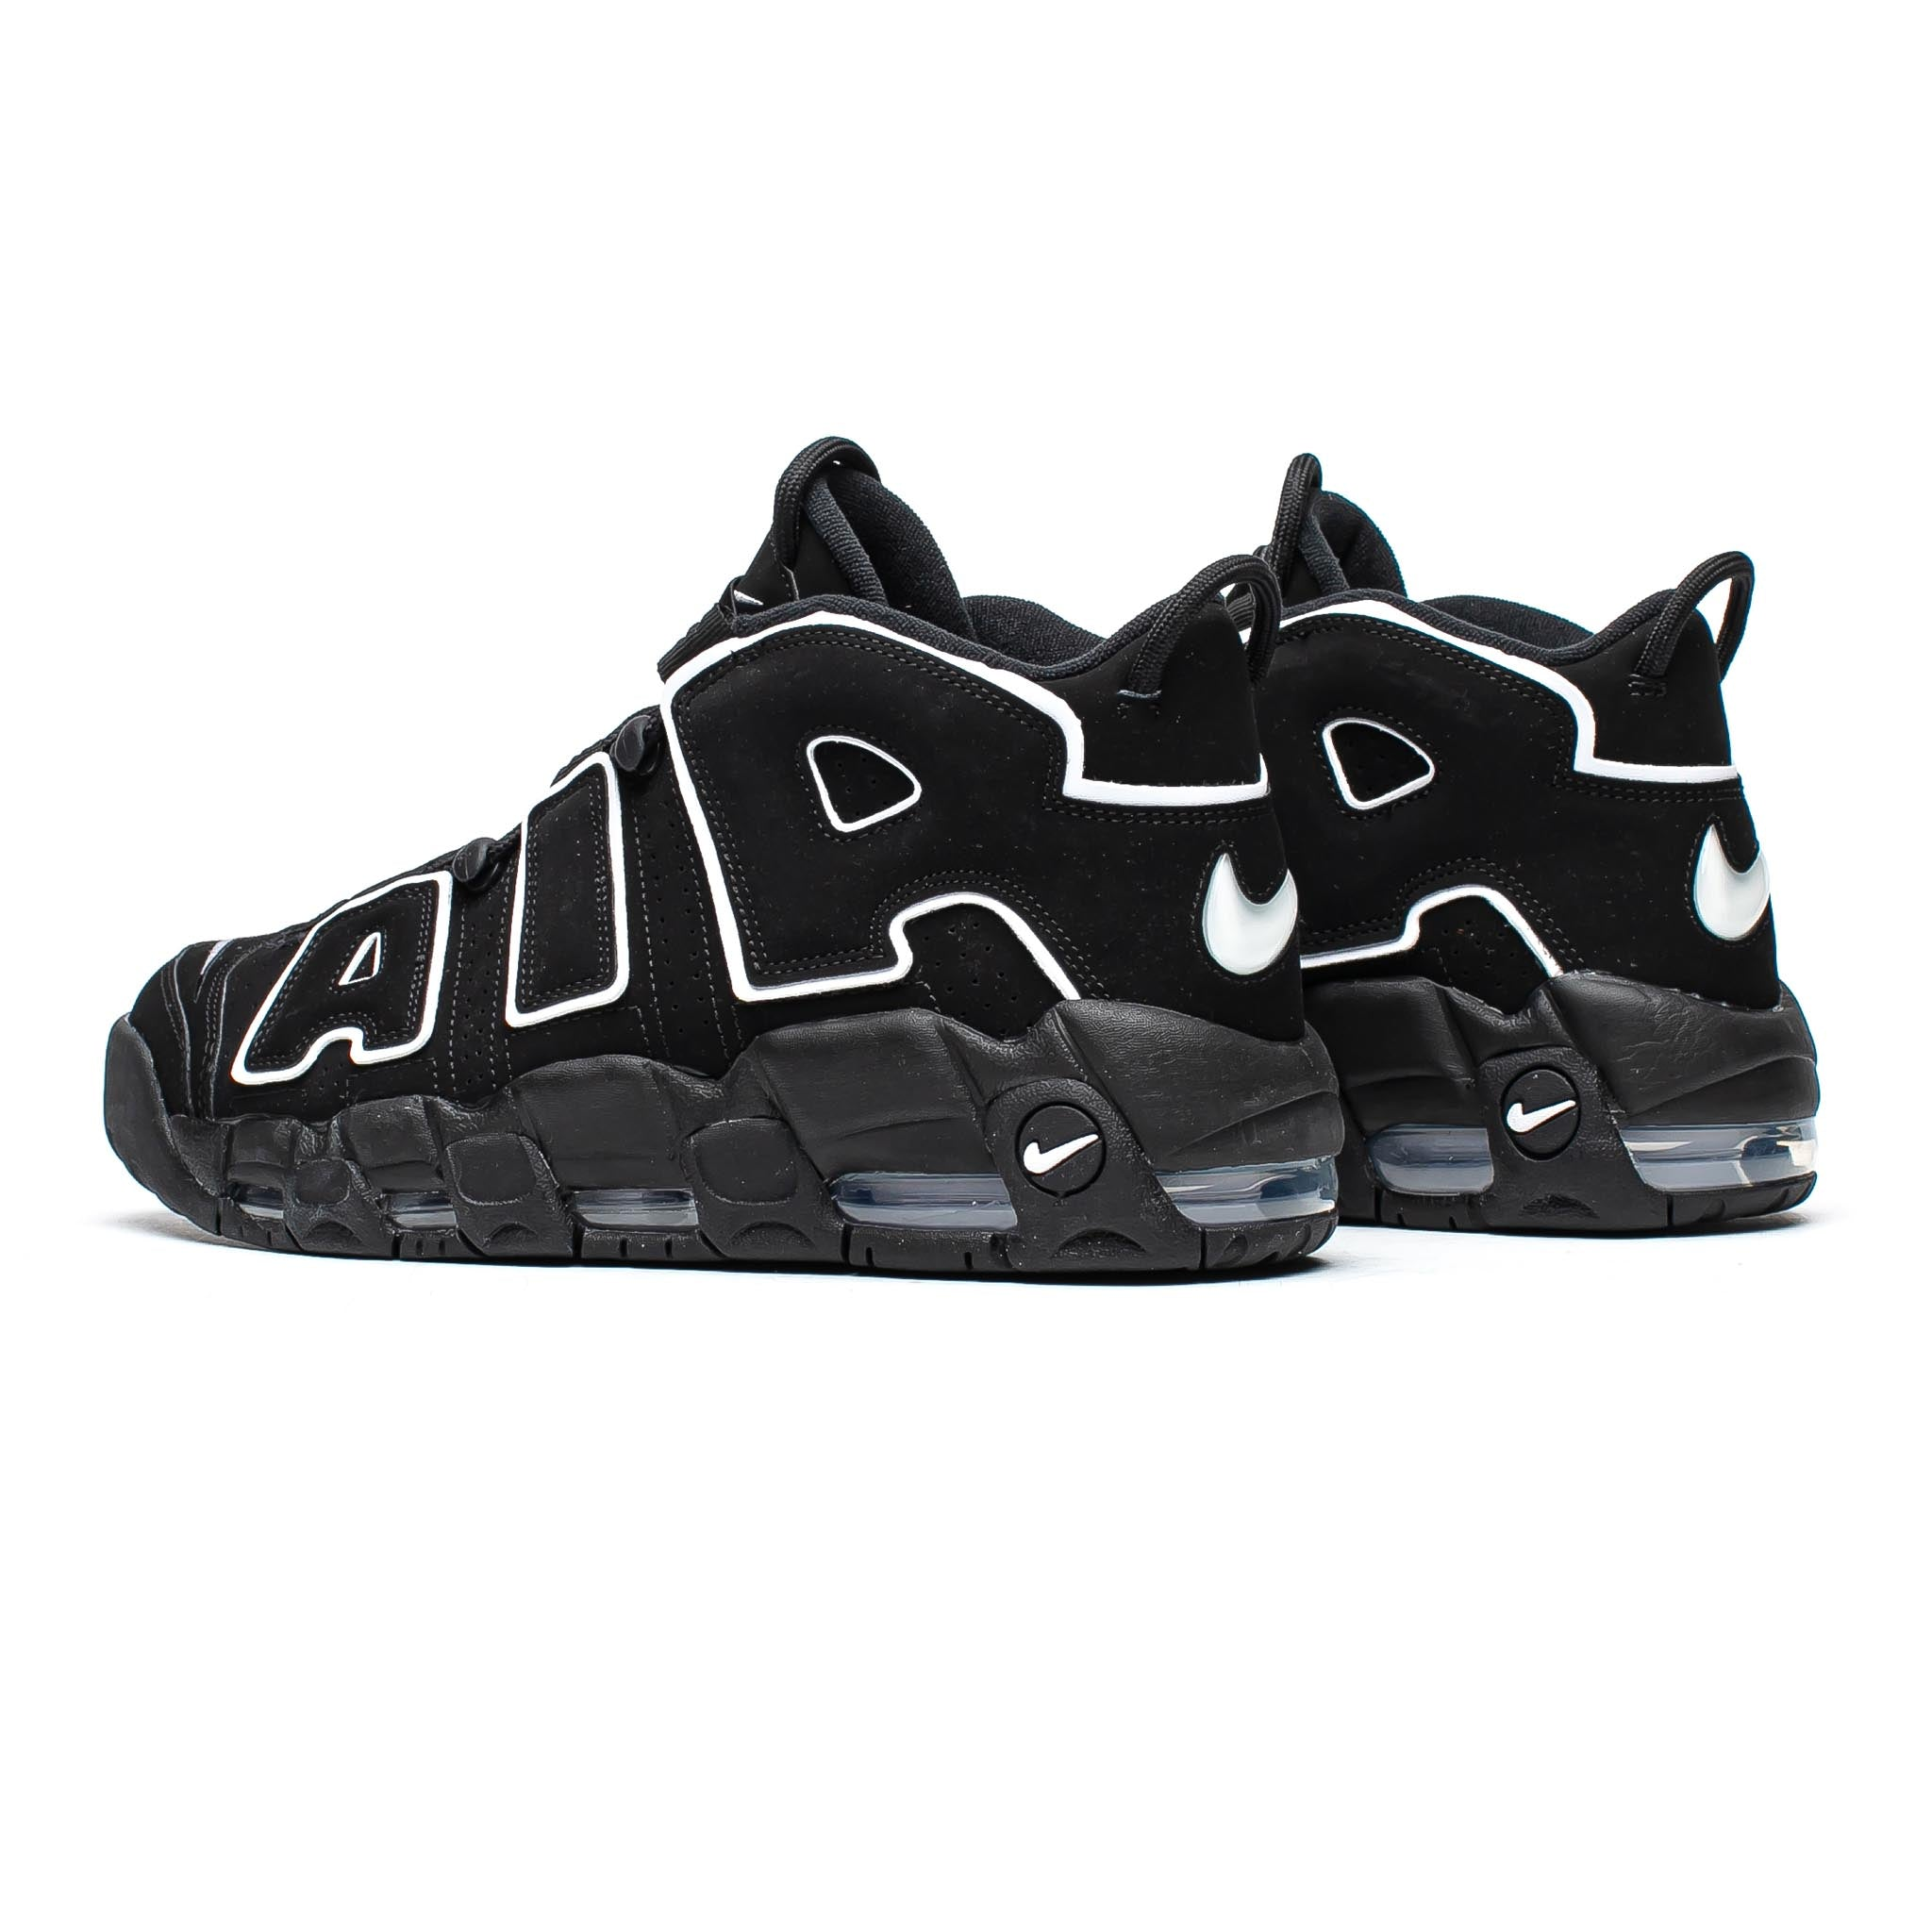 Nike Air More Uptempo OG 'Black/White'